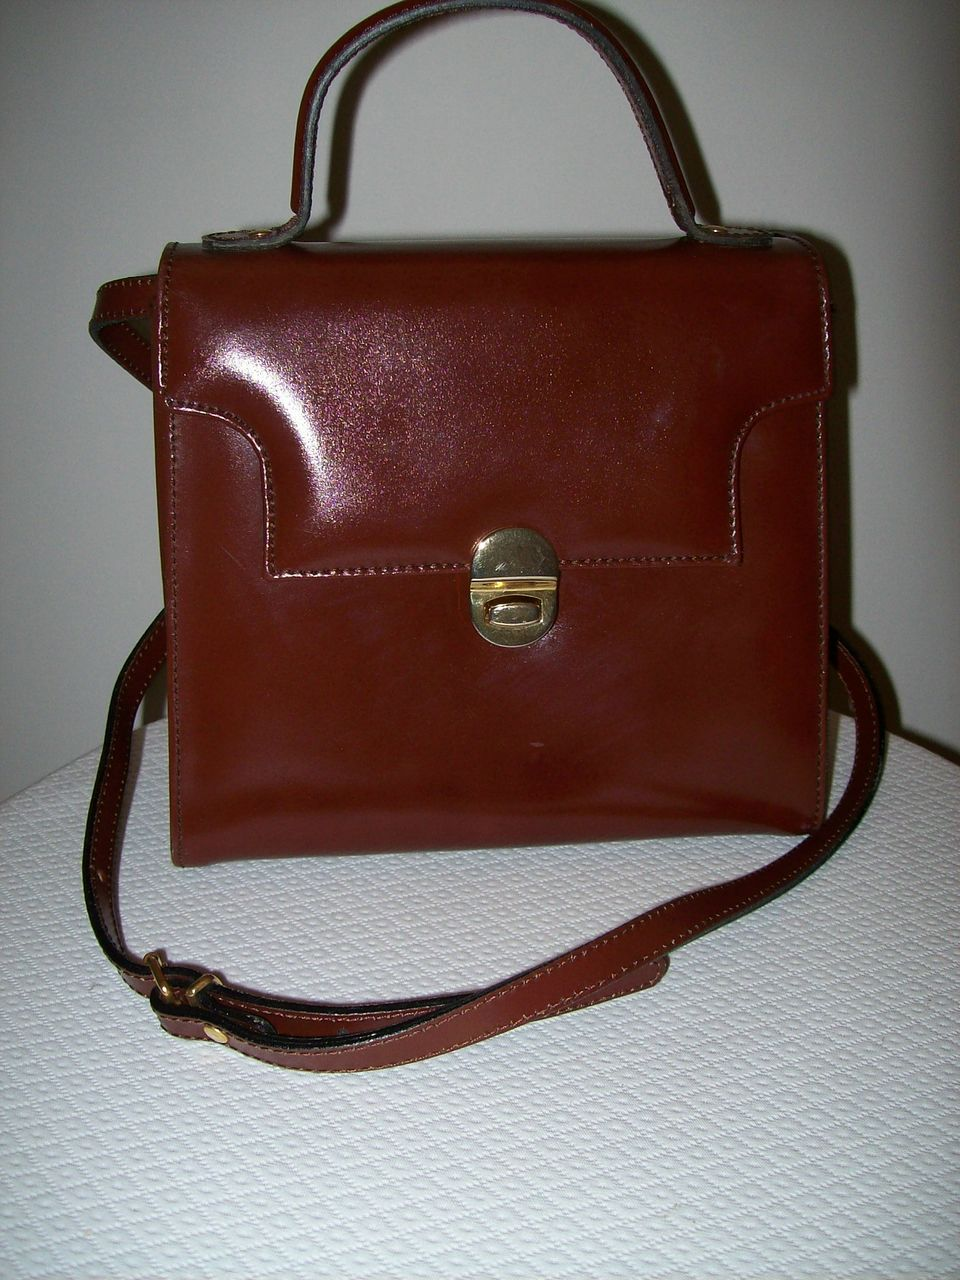 Item ID: 251 leather handbag In Shop Backroom